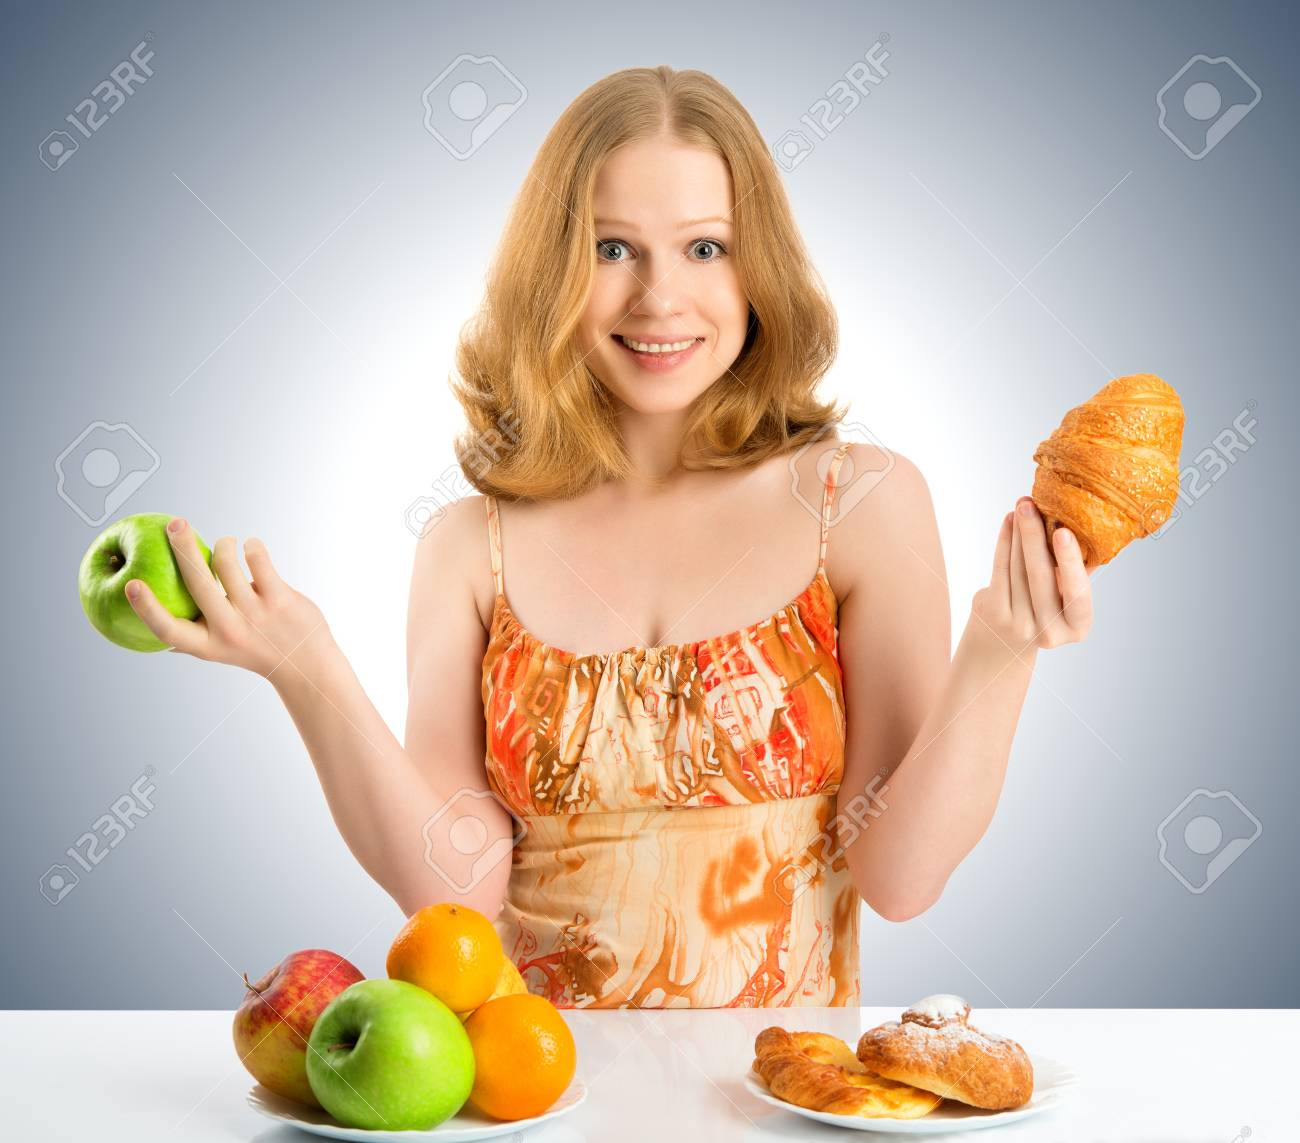 woman with a buns and fruits choose between healthy and unhealthy food Stock Photo - 18957775